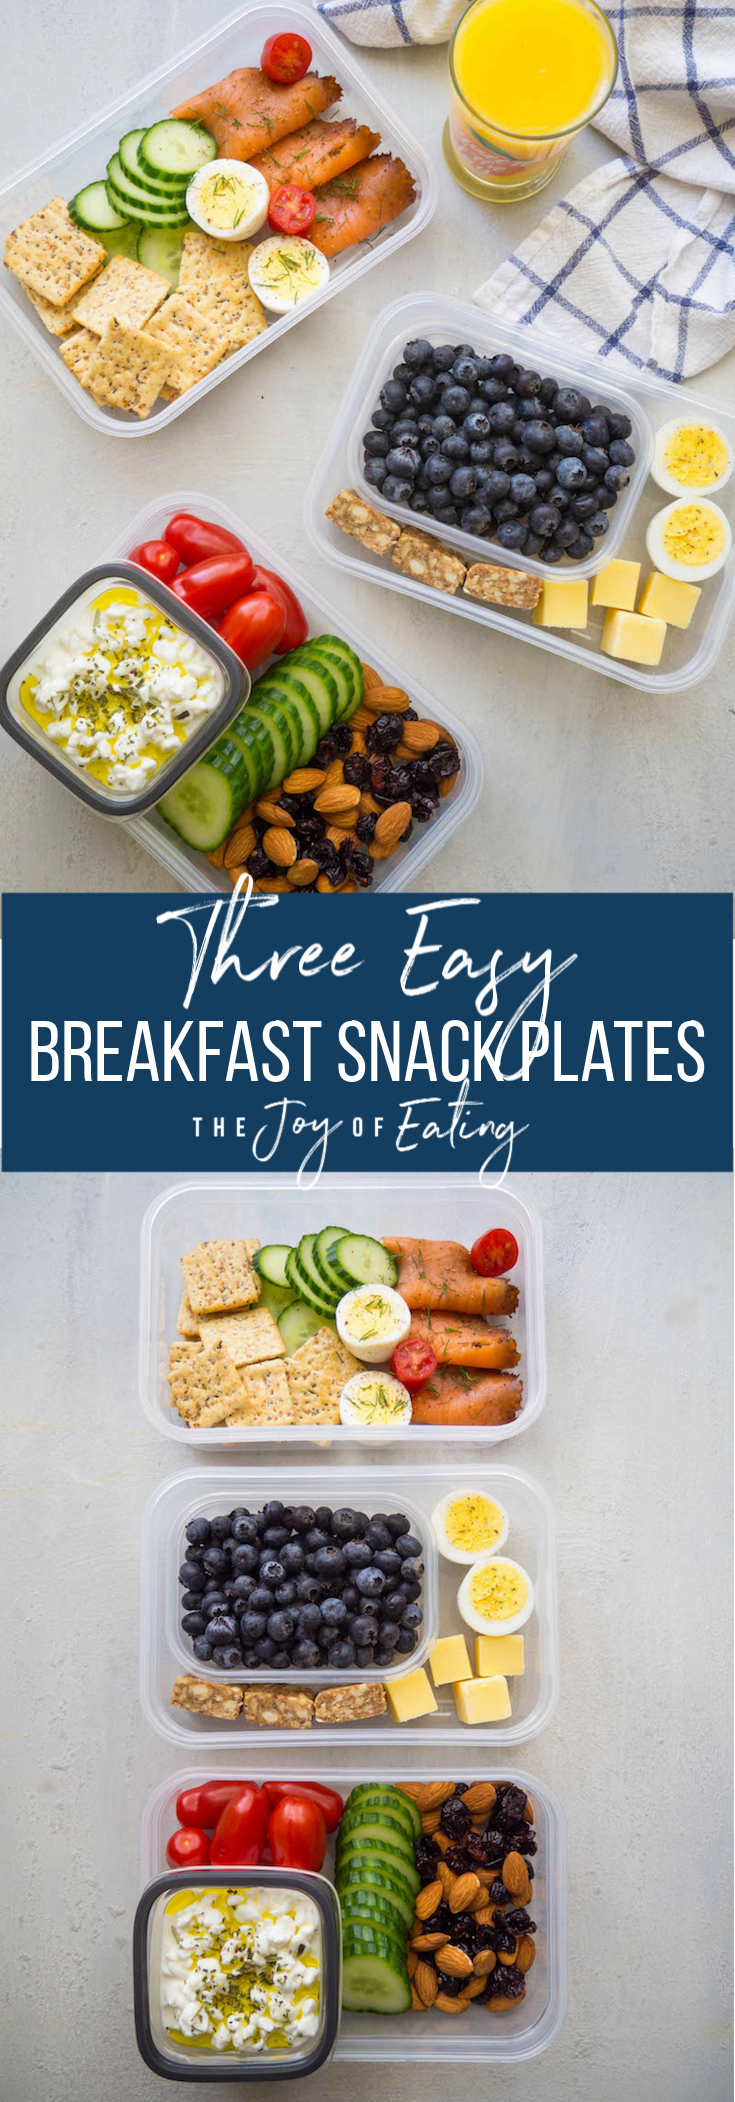 Breakfast snack plates are an easy and healthy grab and go way to start the day! Check out these three ideas! #breakfast #snackplate #healthy